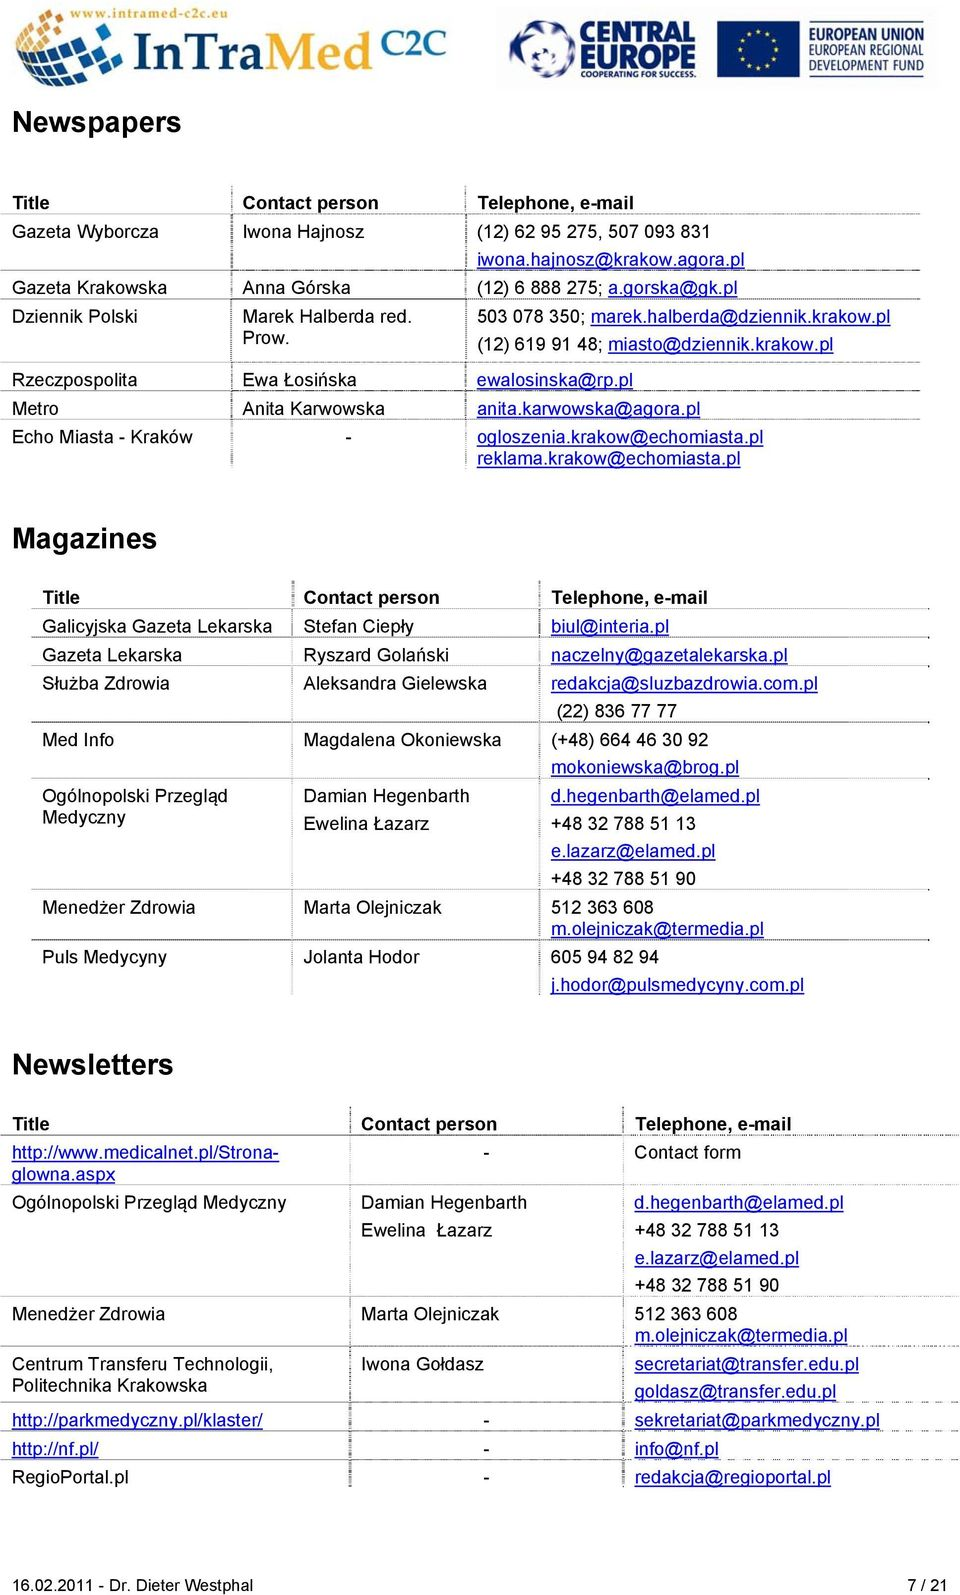 karwowska@agora.pl Echo Miasta - Kraków - ogloszenia.krakow@echomiasta.pl reklama.krakow@echomiasta.pl Magazines Title Contact person Telephone, e-mail Galicyjska Gazeta Lekarska Stefan Ciepły biul@interia.